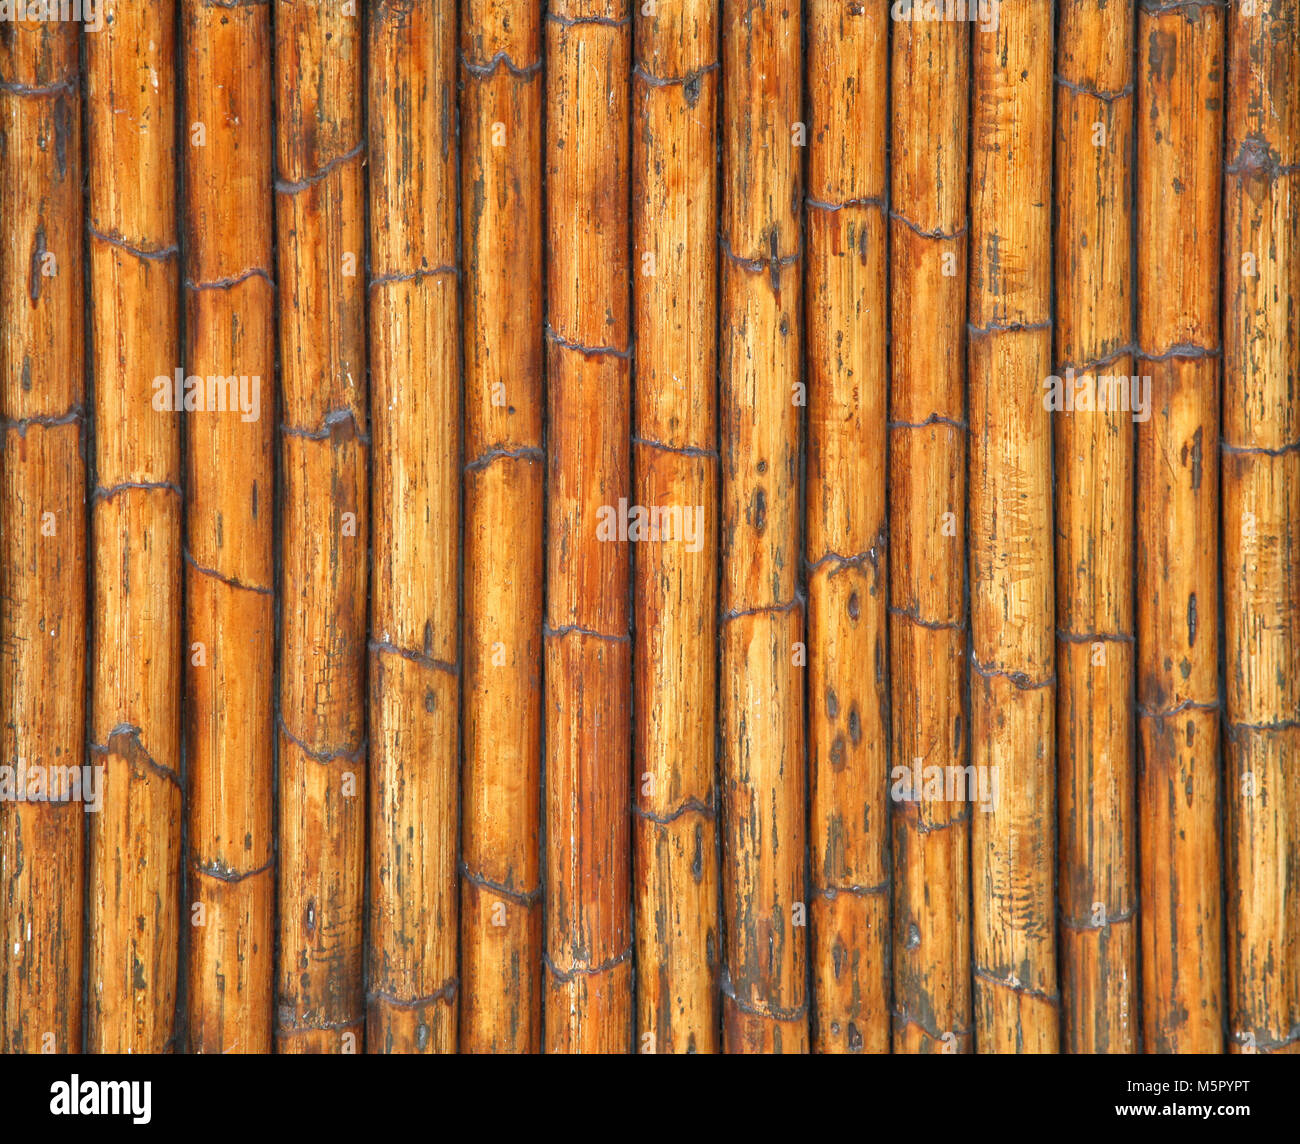 Detailed texture of wooden cane sticks surface Stock Photo